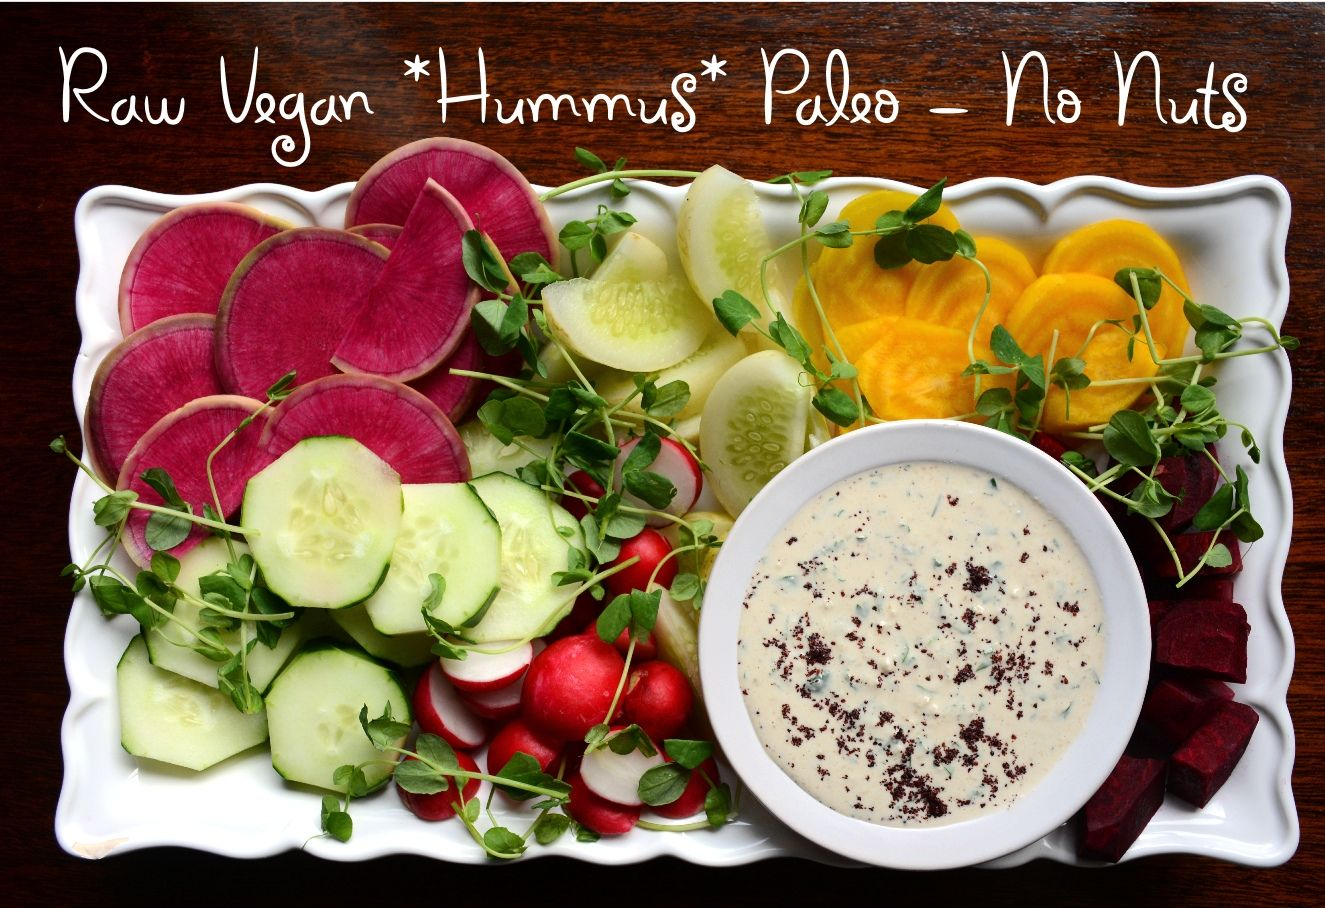 I can't believe it's not Hummus!